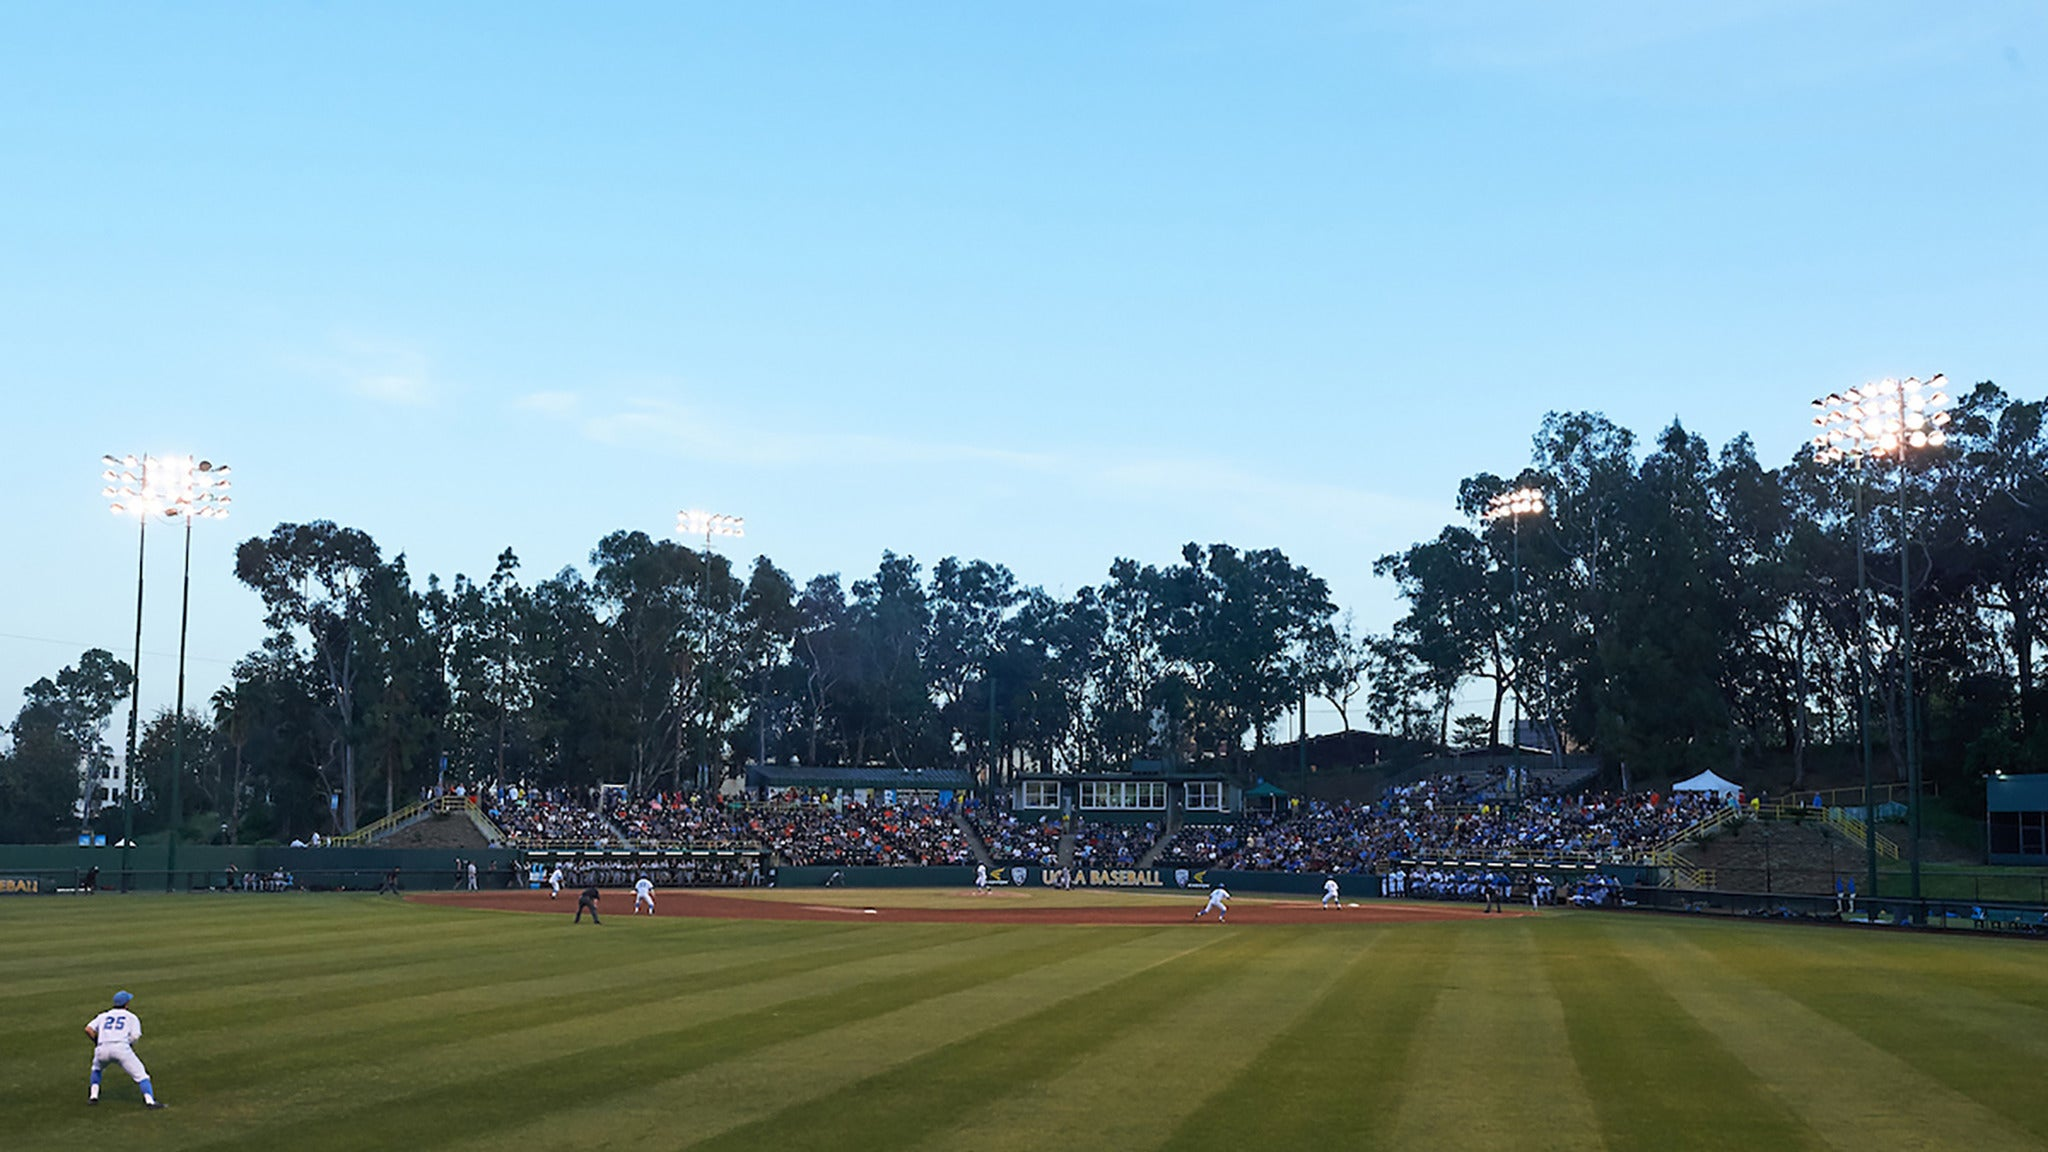 Arizona Wildcats Baseball at UCLA Bruins Baseball